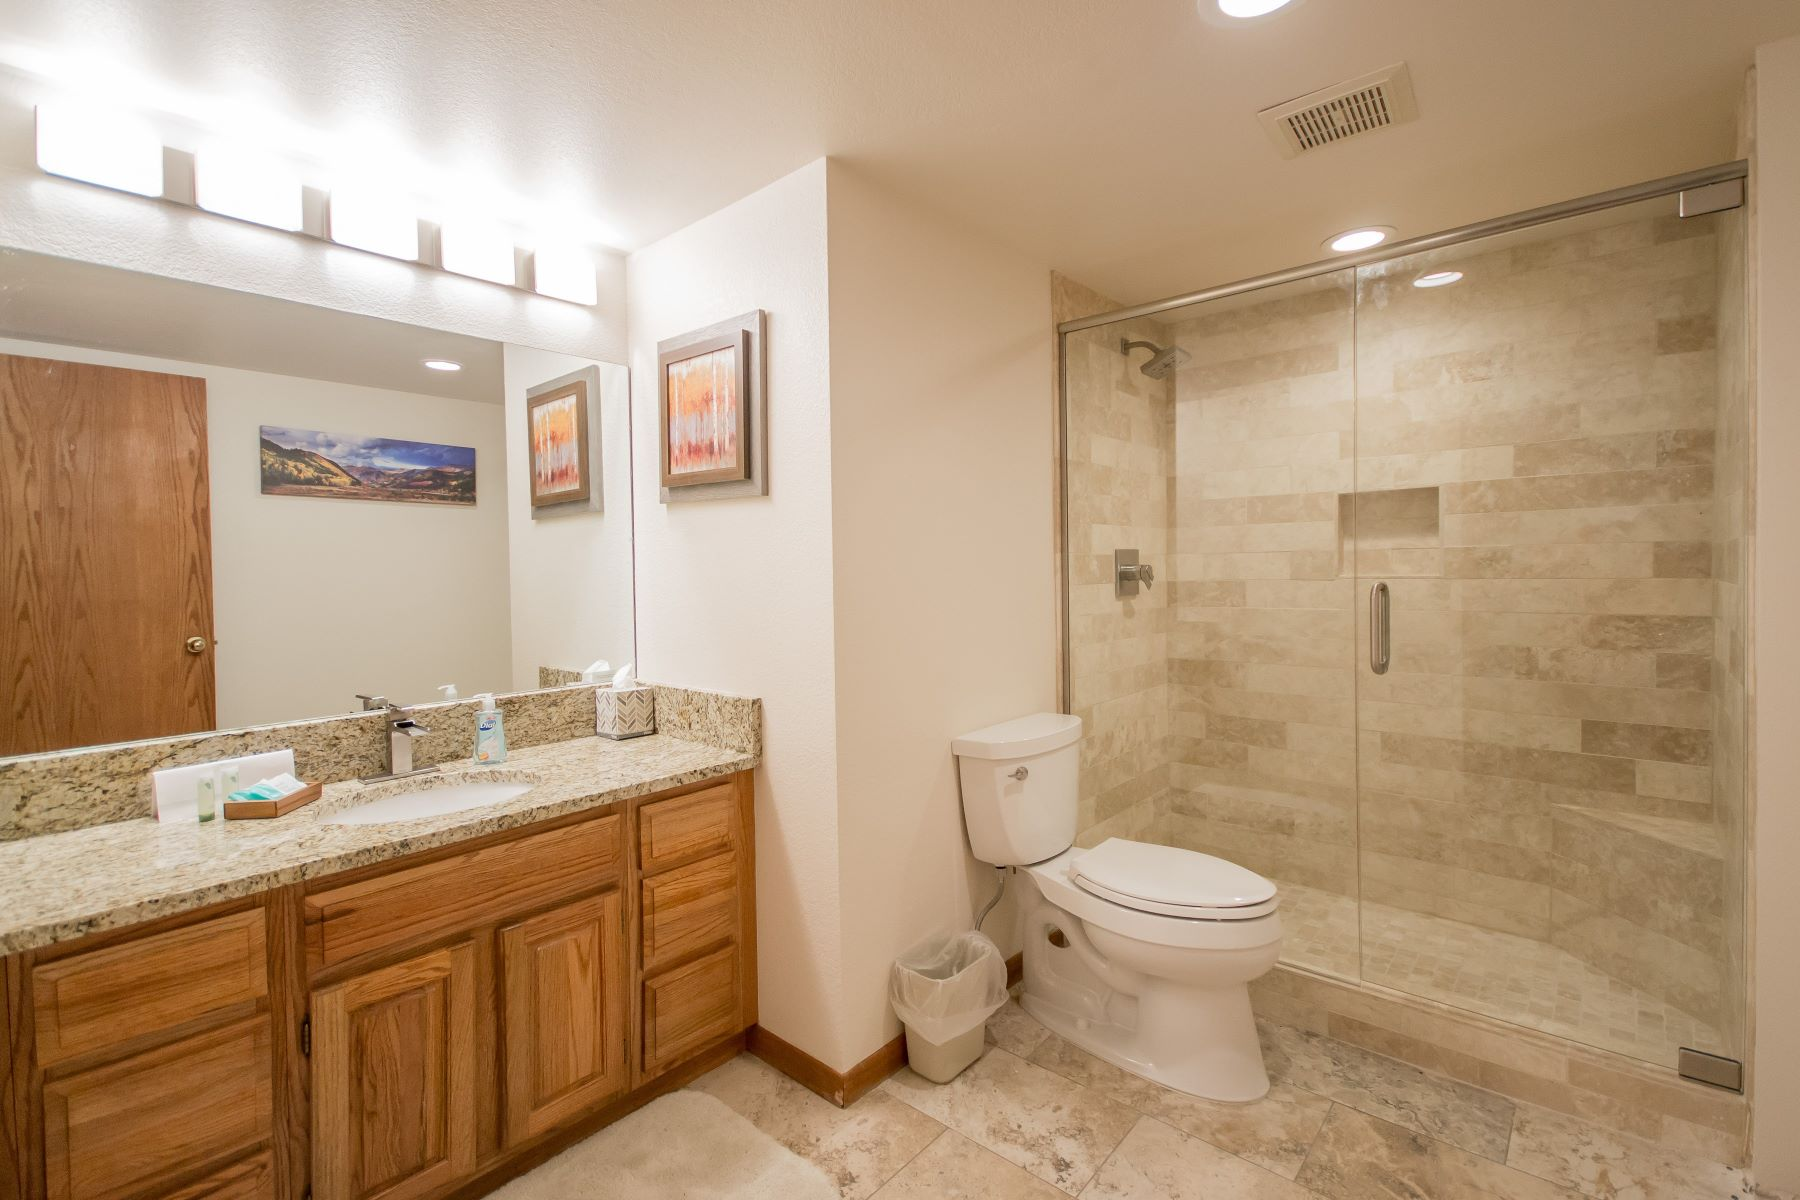 Additional photo for property listing at Torian Plum #205: 2014 Remodel 1855 Ski Time Square Dr. #205 Steamboat Springs, Colorado 80487 United States